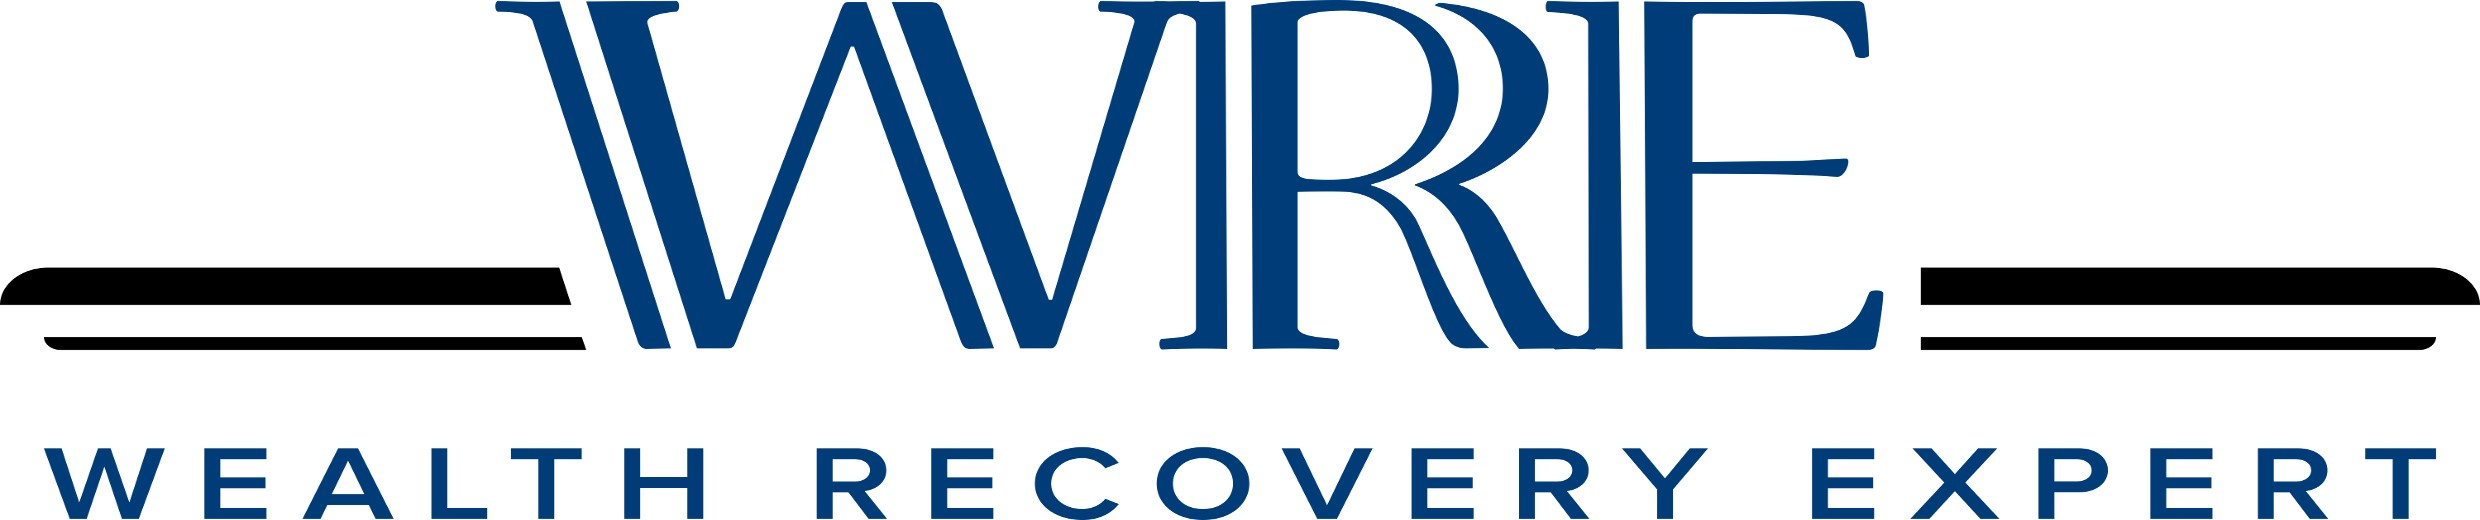 Wealth Recovery Expert   LinkedIn